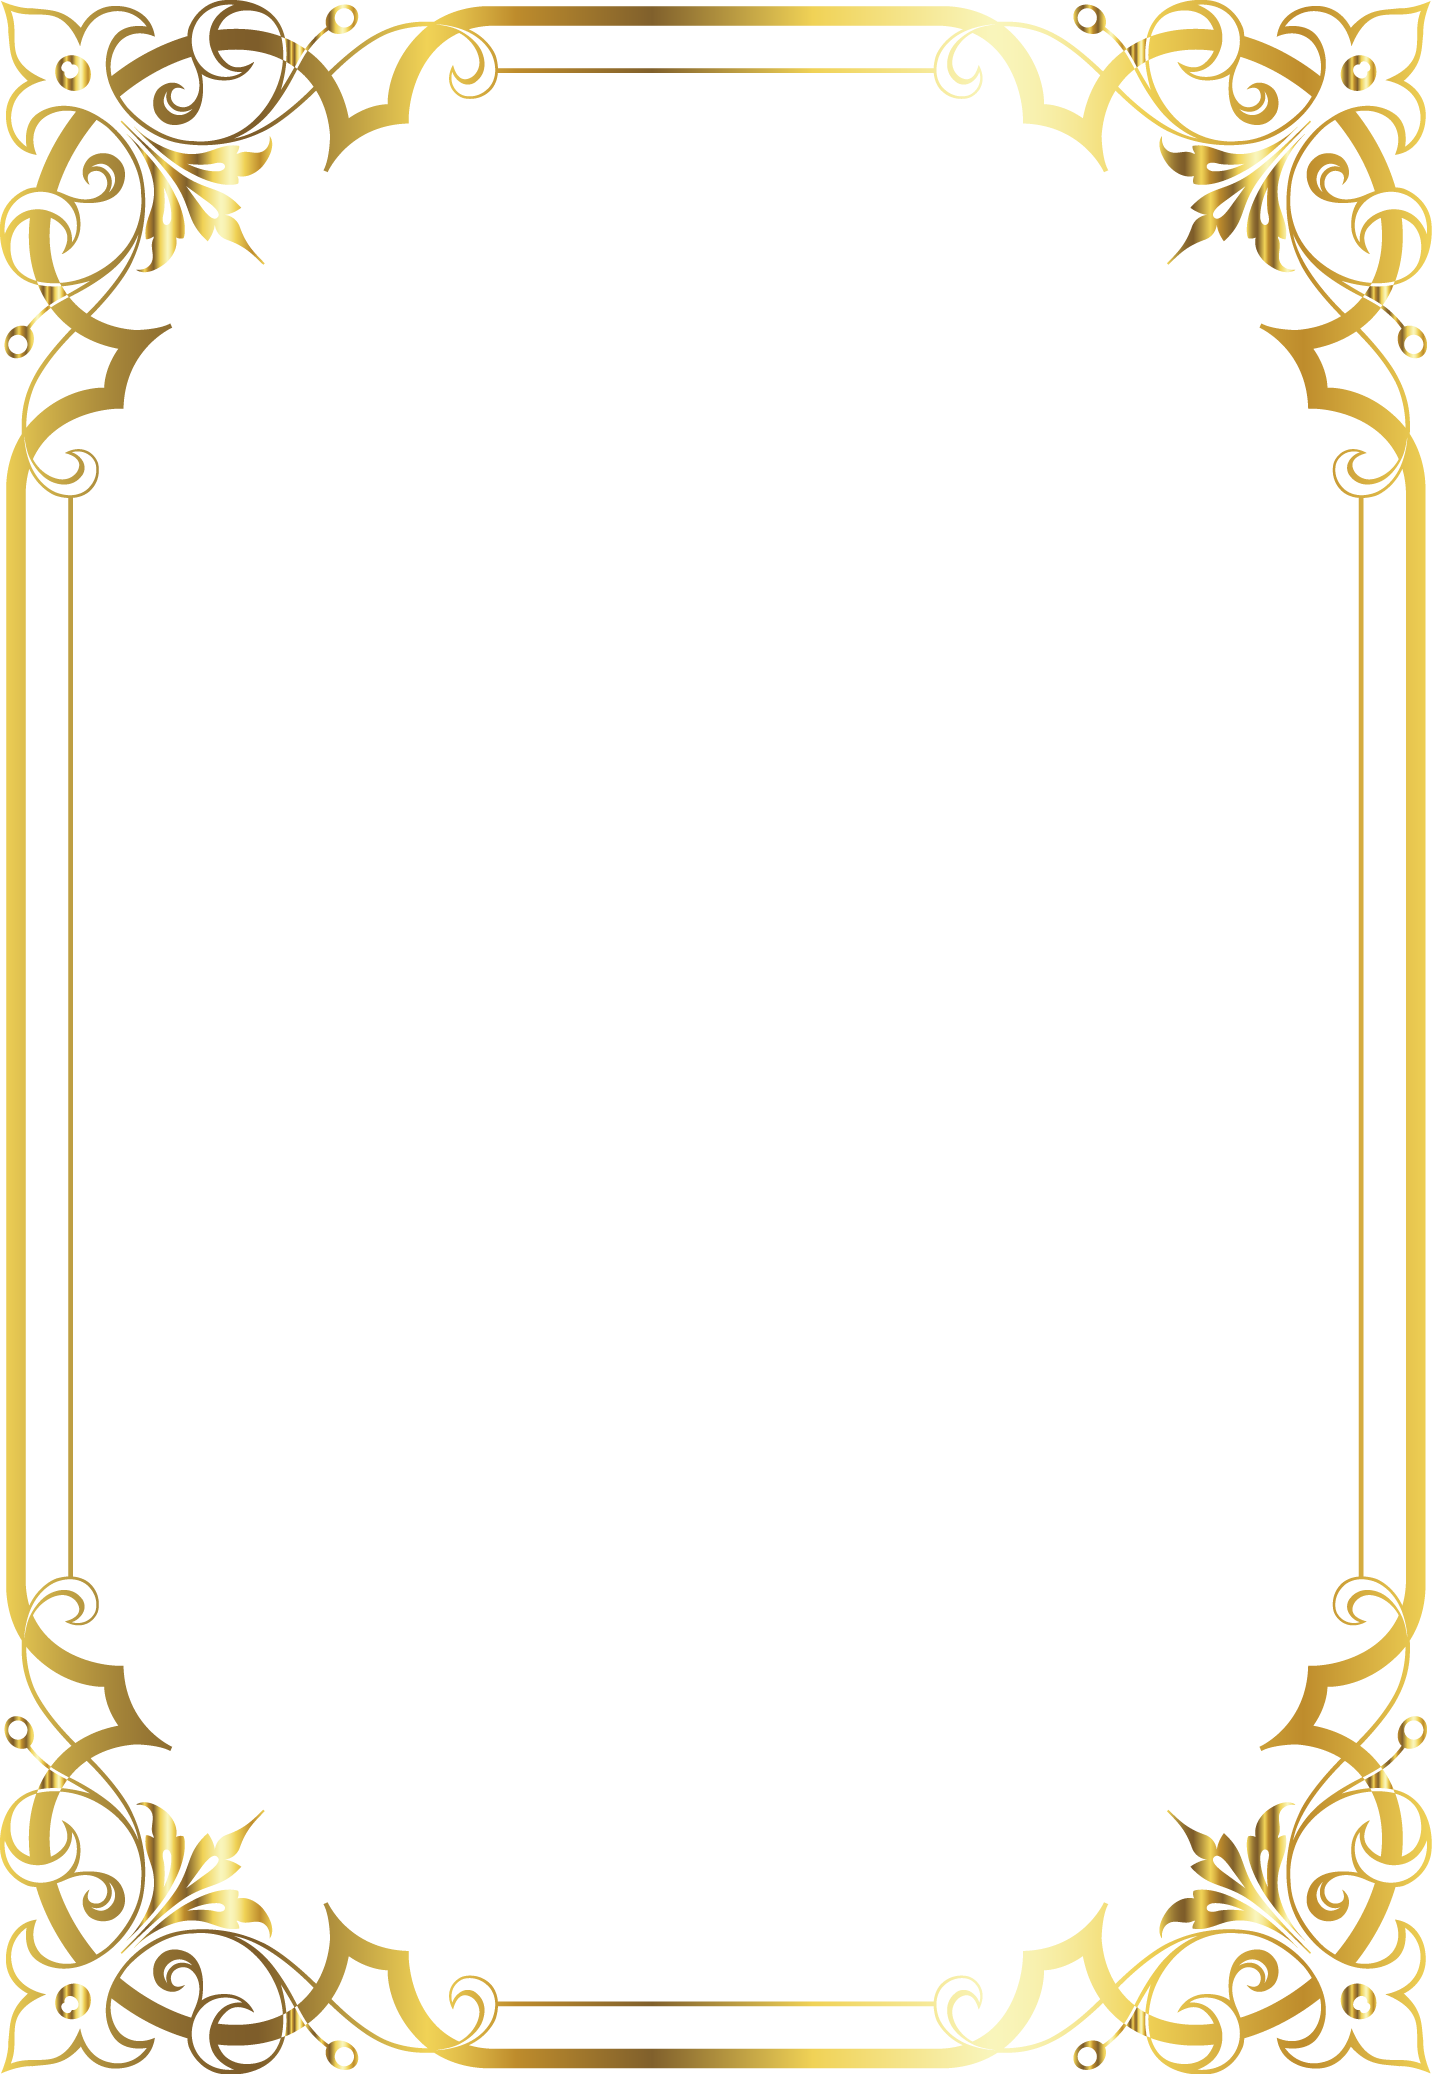 French clipart border french. Borders and frames picture